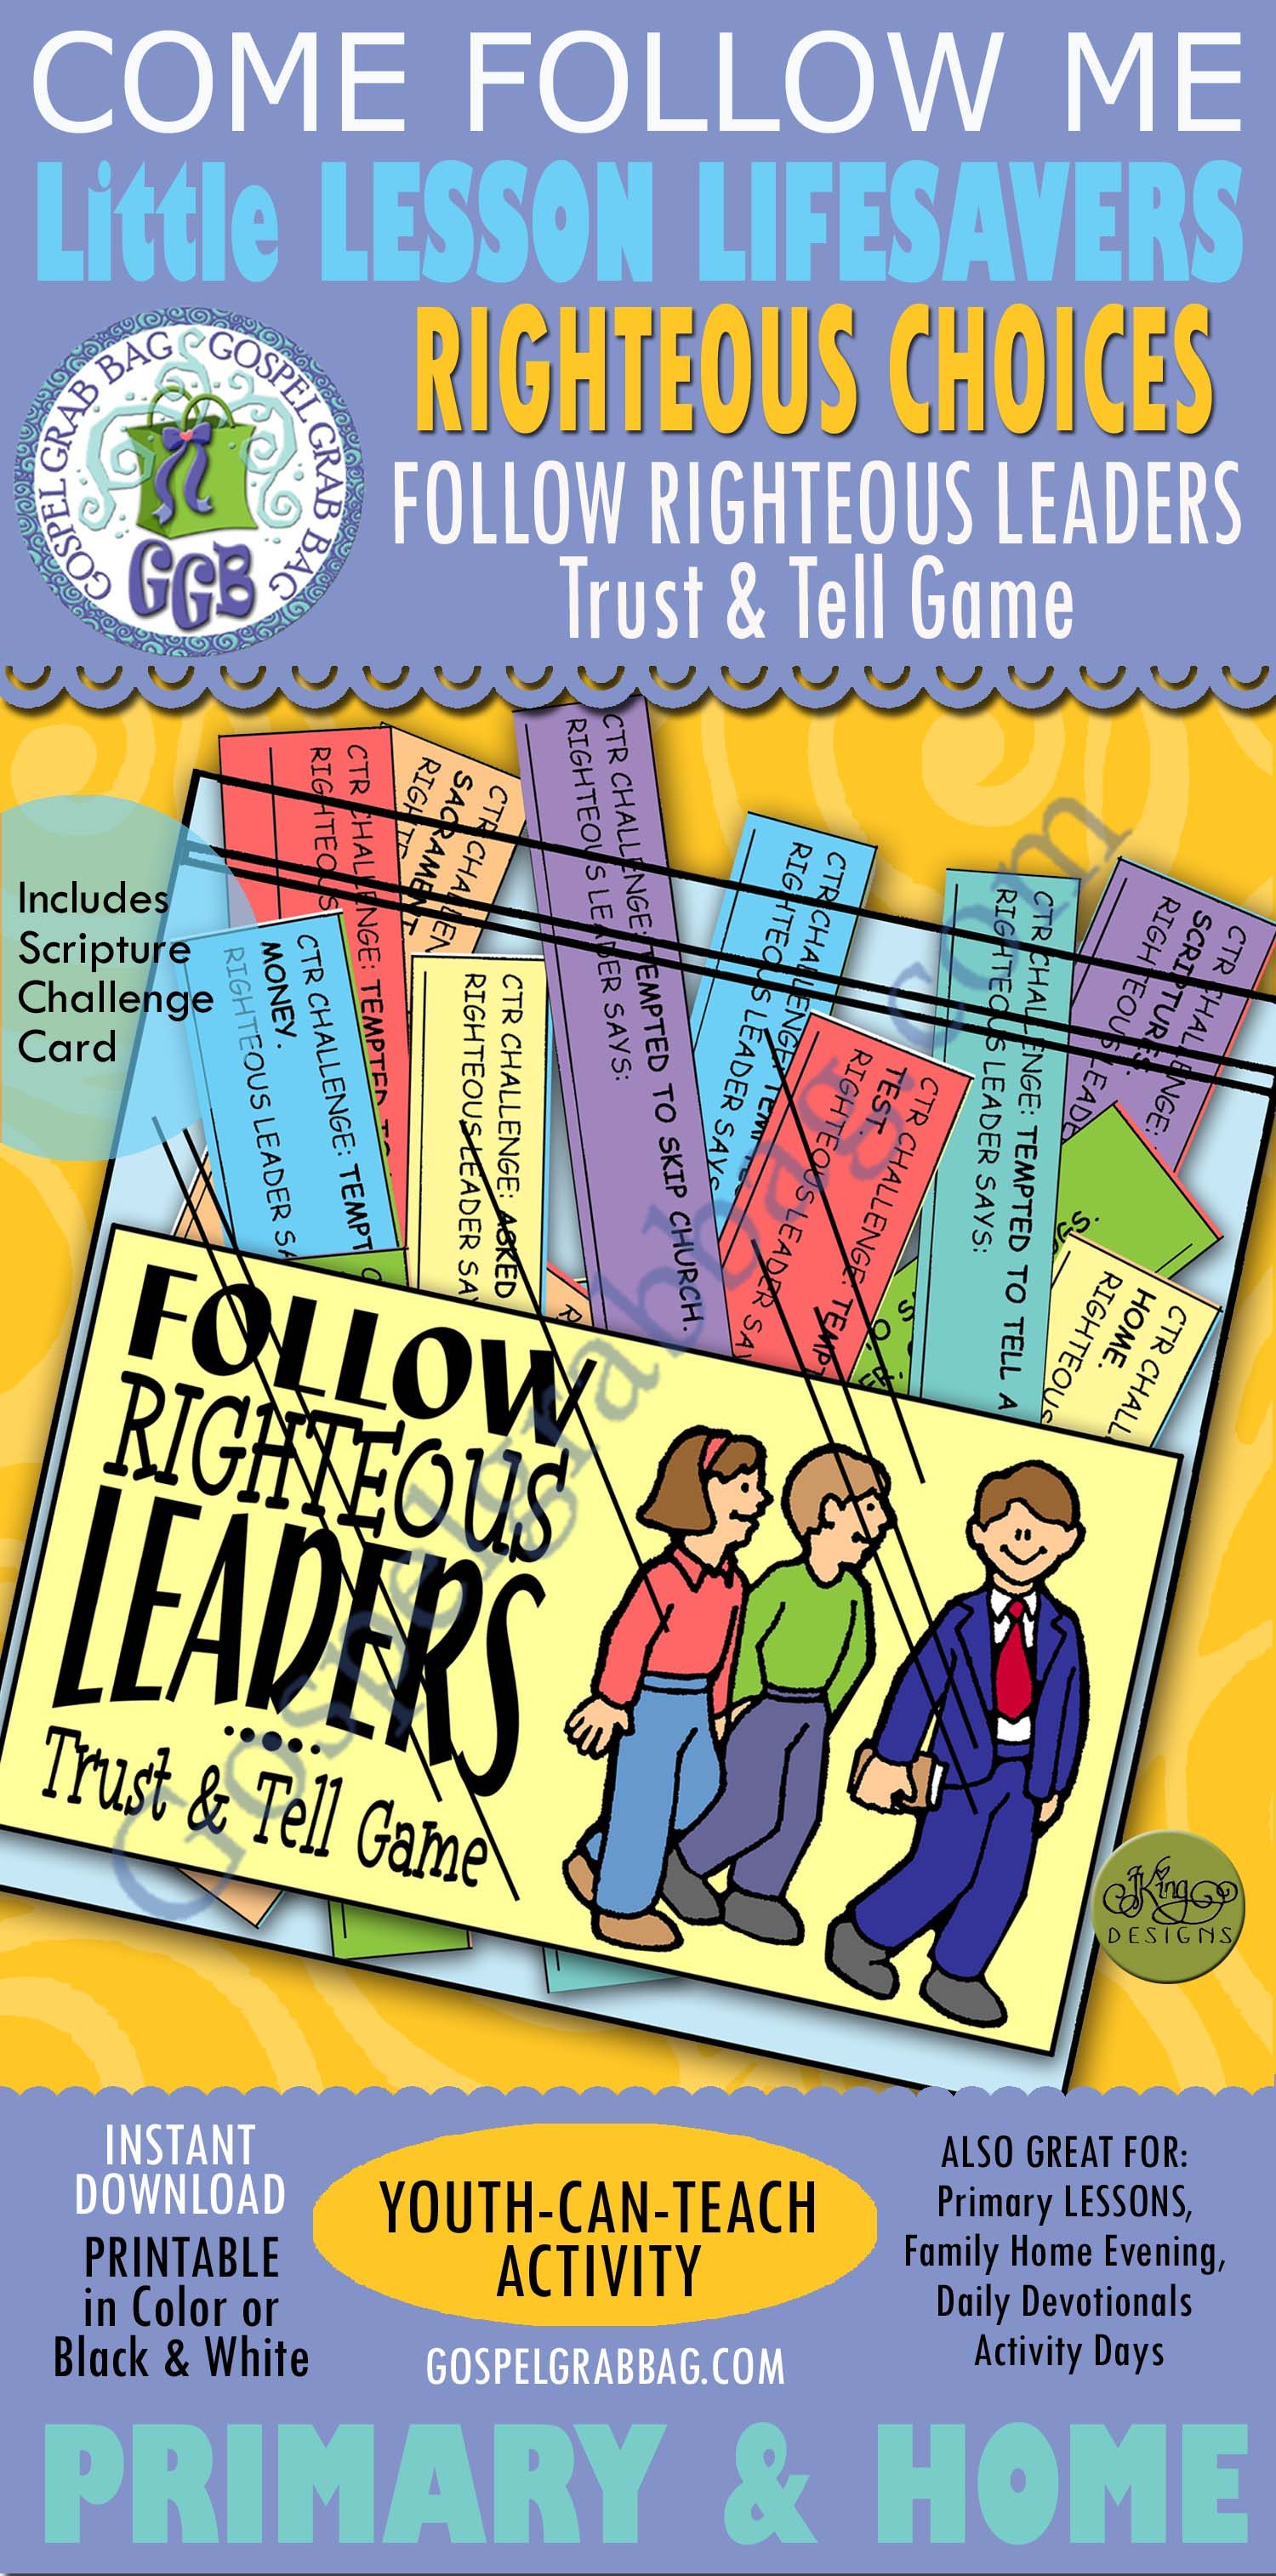 Follow Righteous Leaders